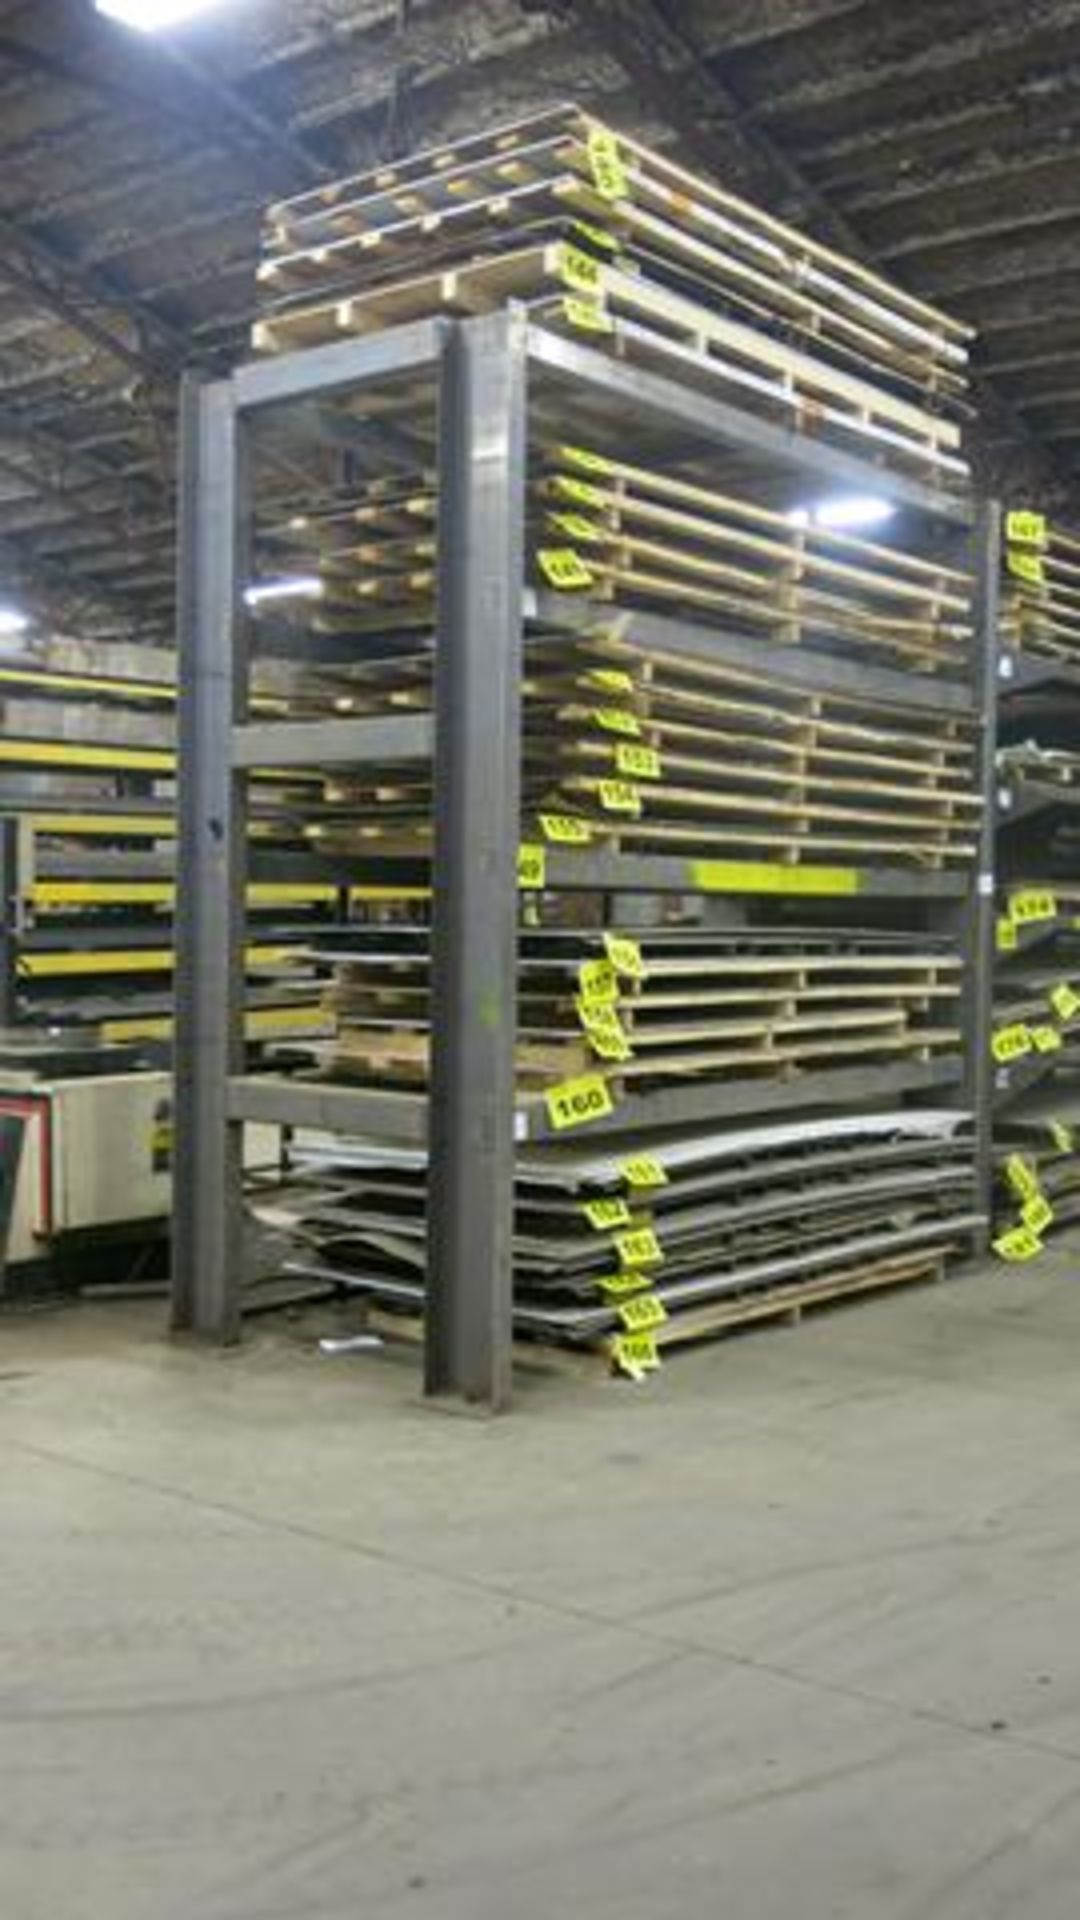 STORAGE RACK, 12' X 12' X 5.5', 18,000 LBS. CAPACITY (CONTENTS NOT INCLUDED) (LATE DELIVERY)